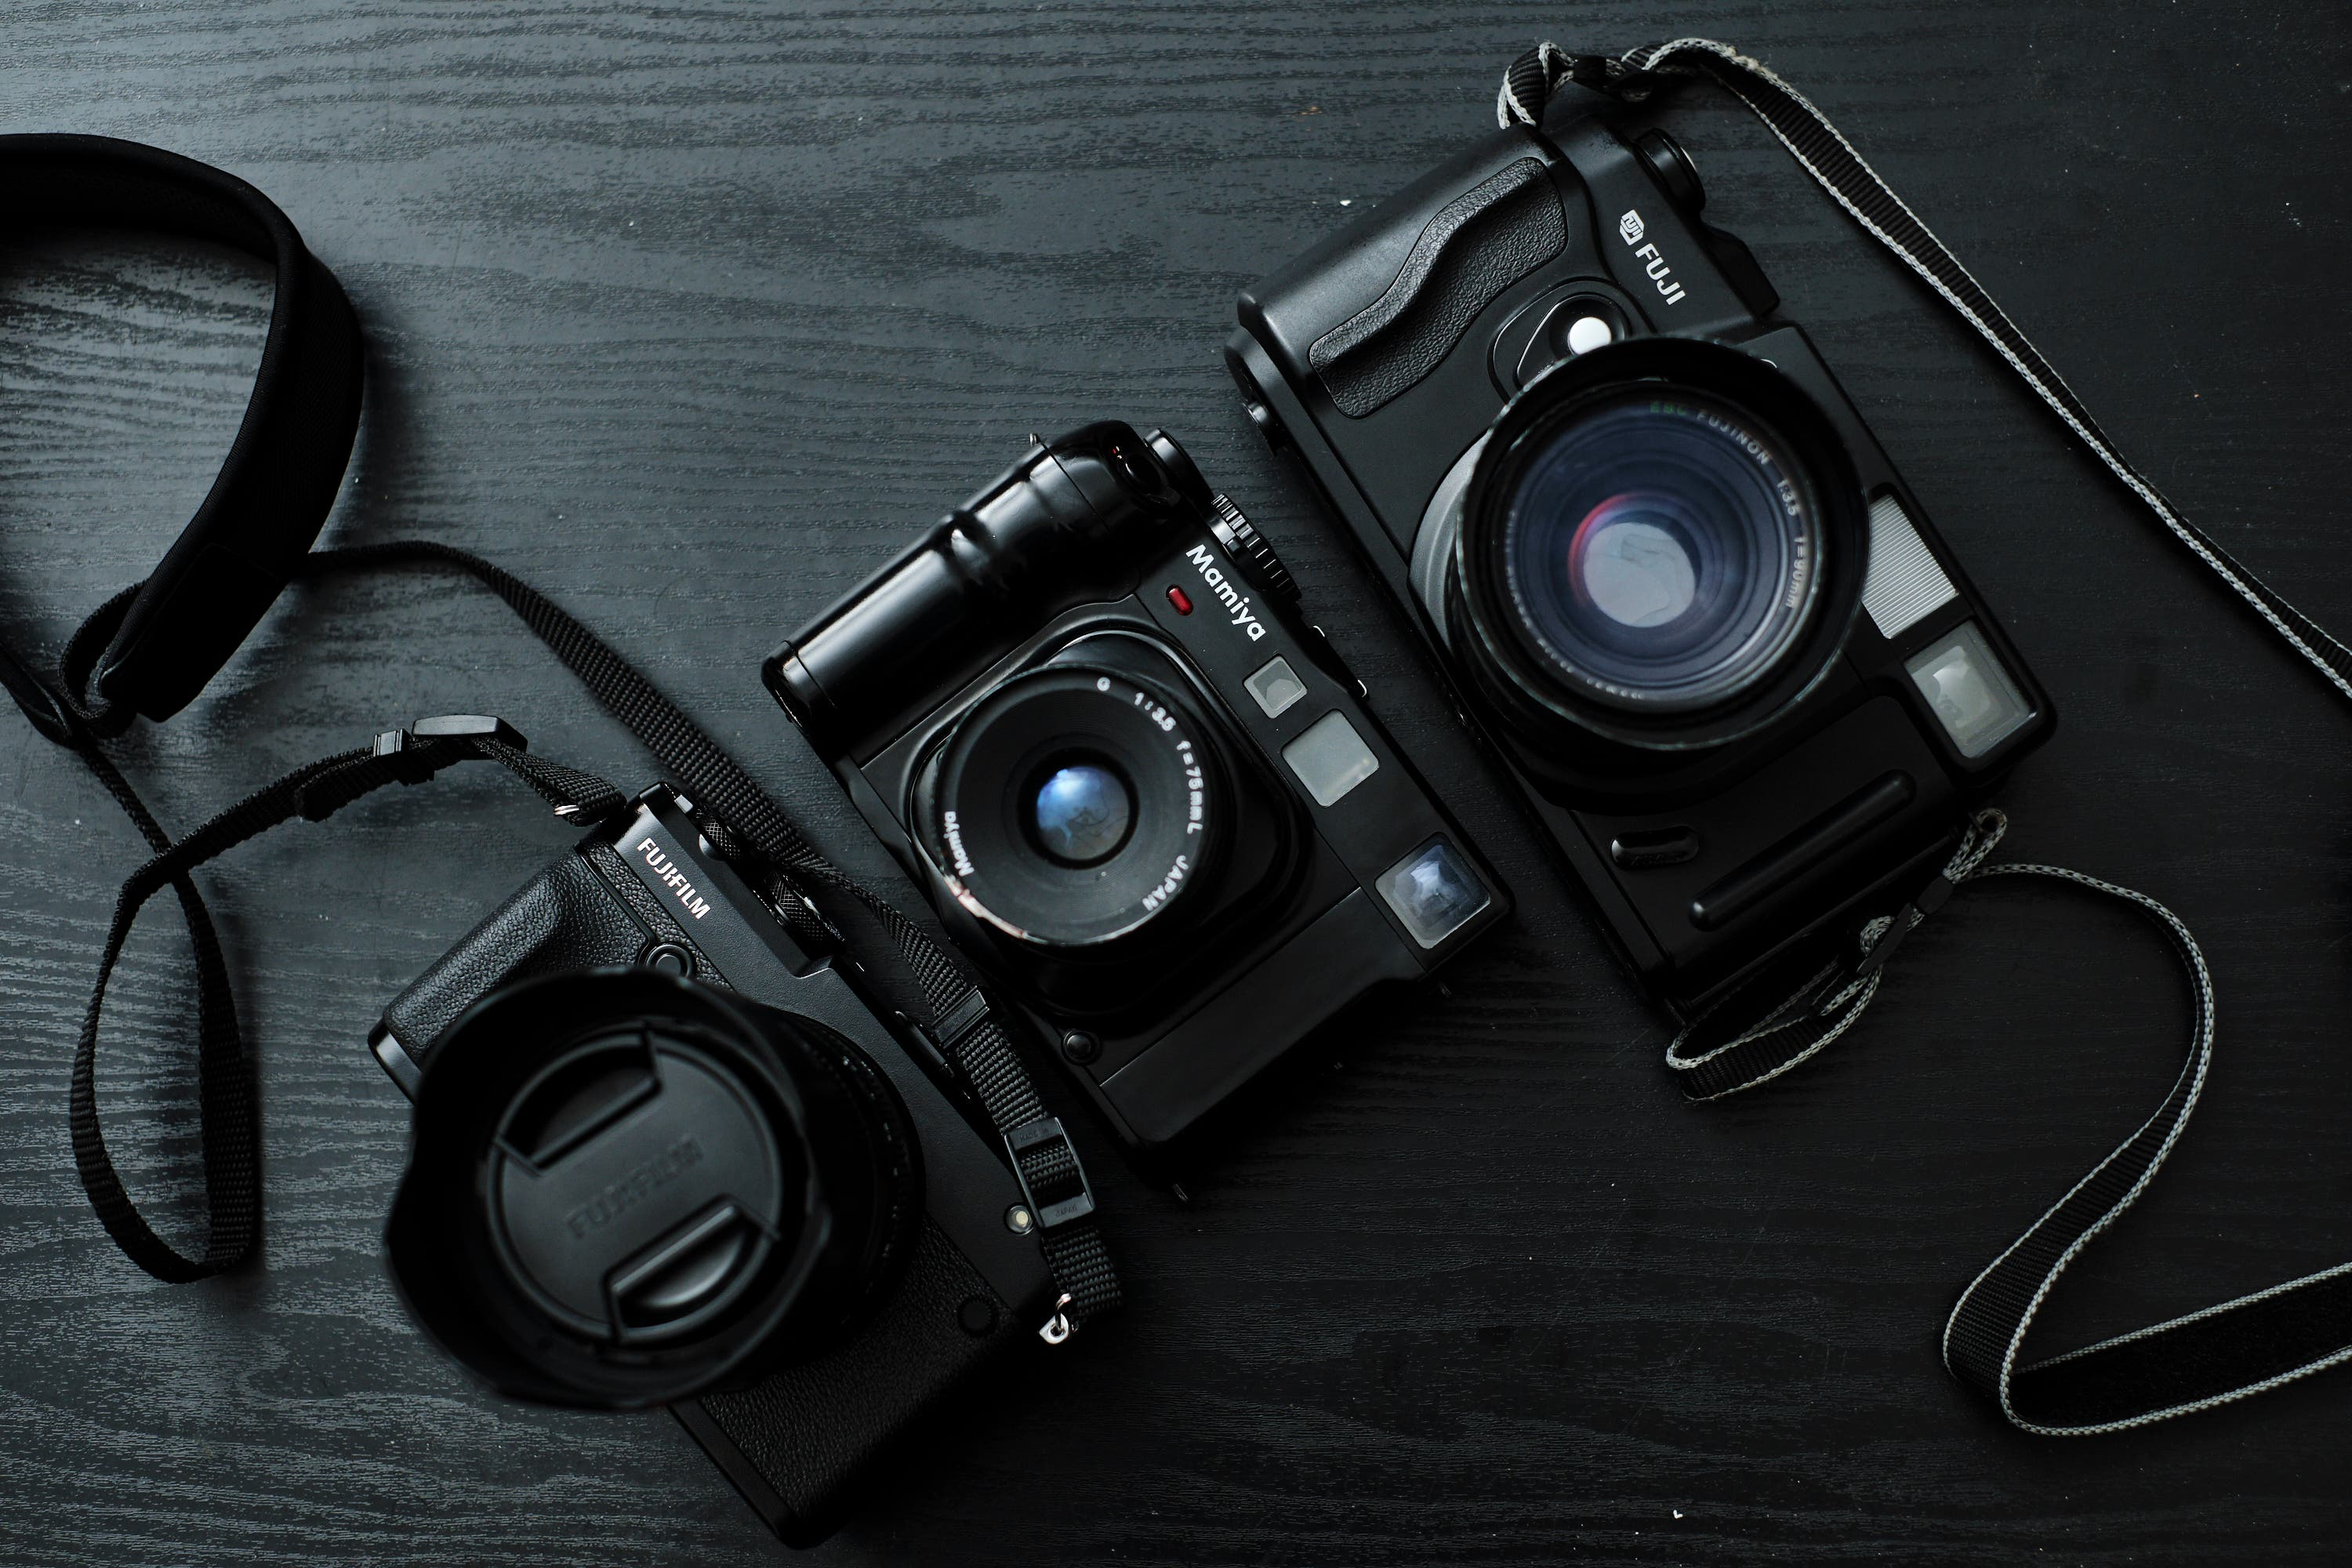 To Compete with Full Frame, Fujifilm Will Need to Get Retro